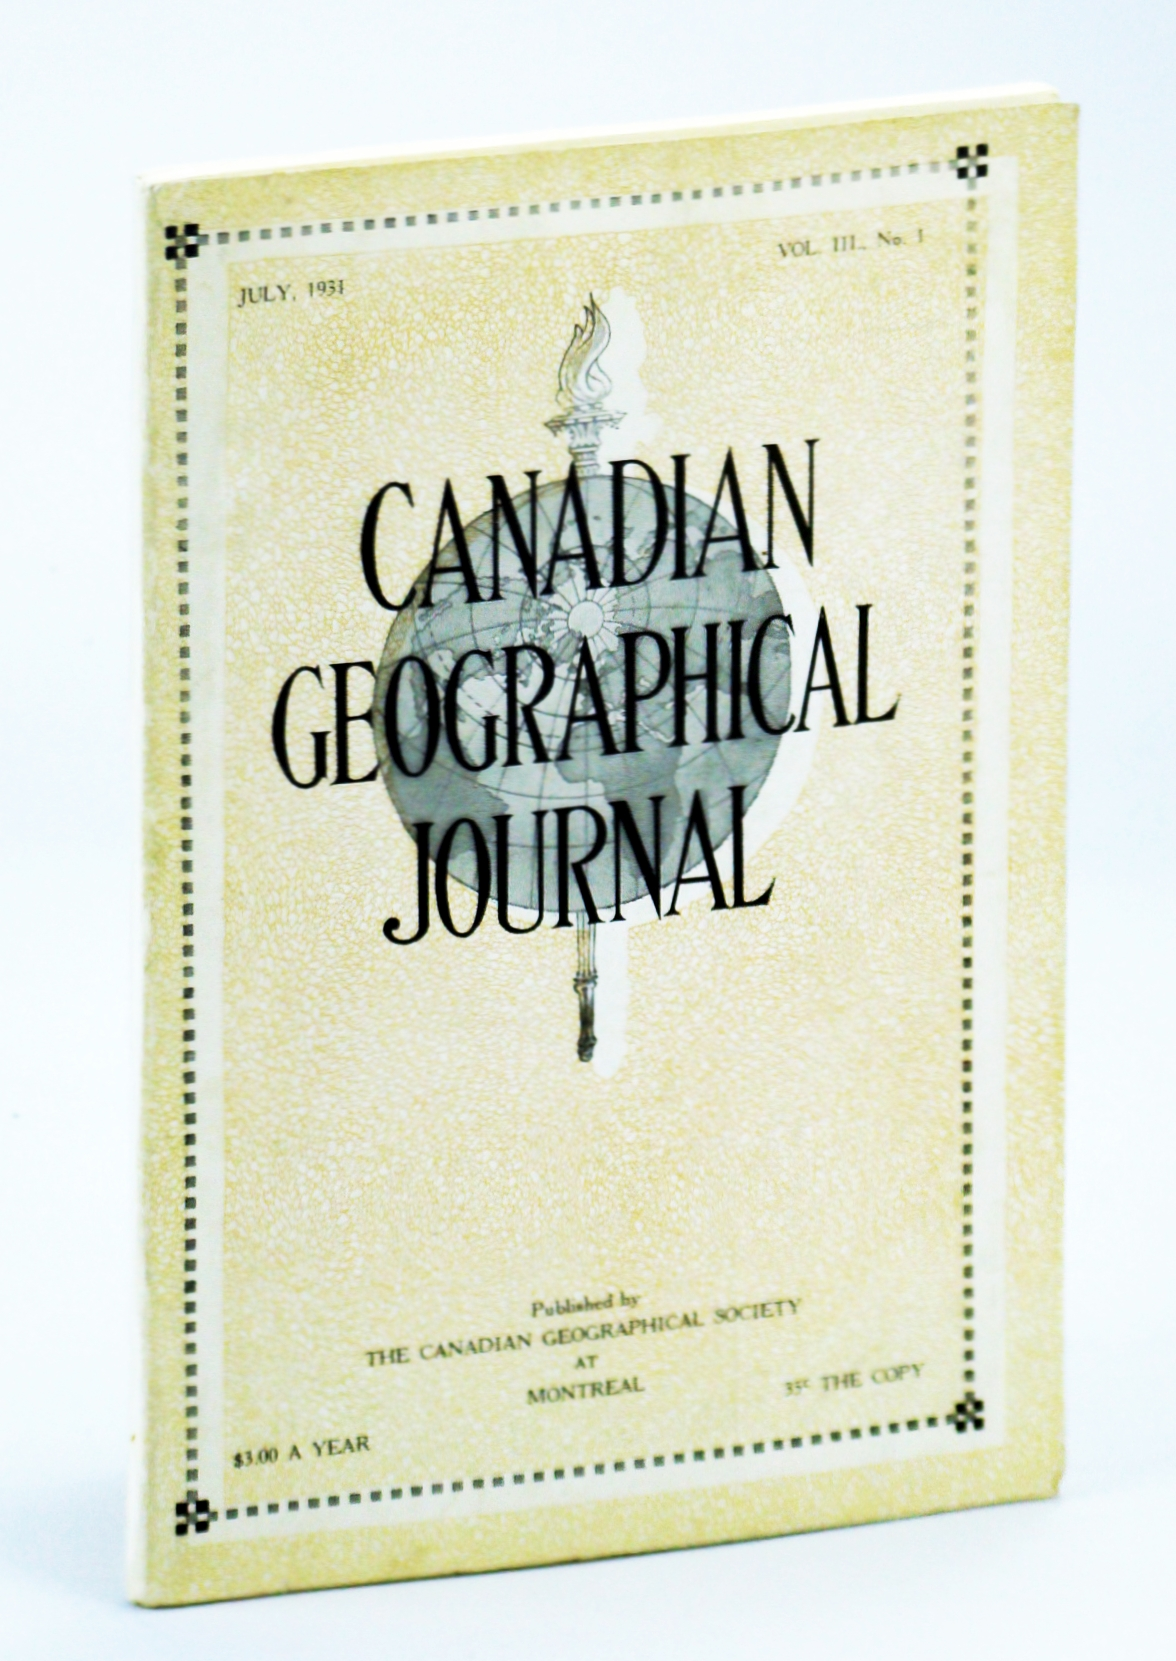 Image for Canadian Geographical Journal, July 1931, Vol. III, No. 1 - The Royal Mint and Its Branches